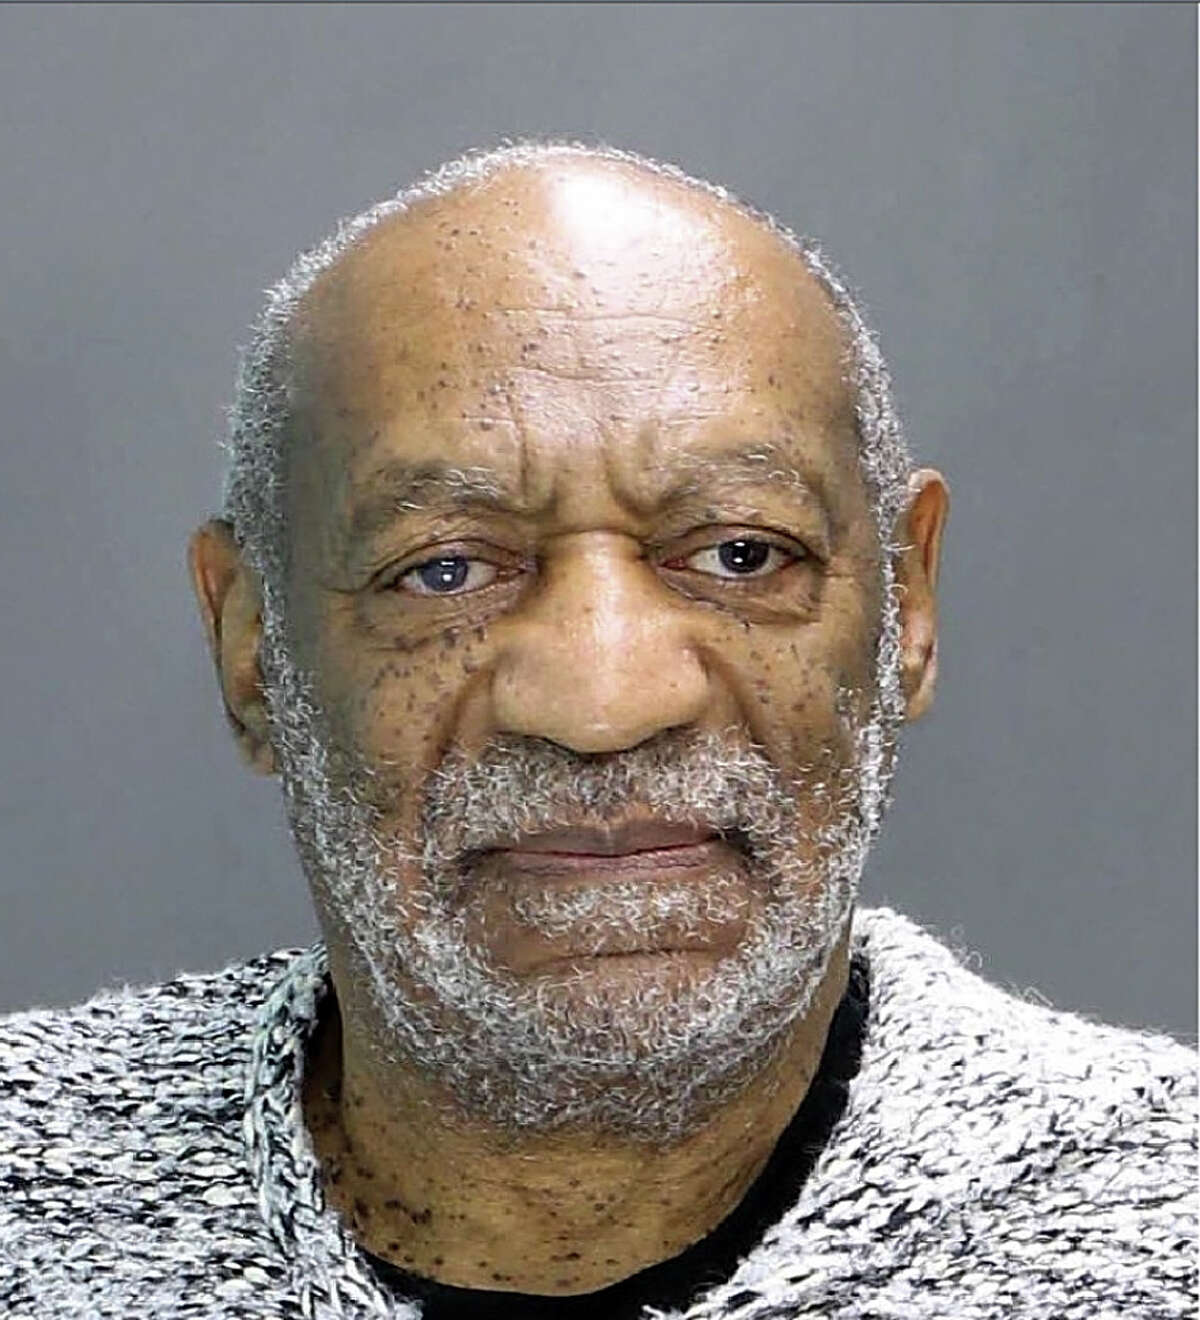 Bill Cosby This shot was taken when Cosby turned himself in on a charge of aggravated indecent assault for an alleged encounter in 2004. At least 35 women have accused Cosby of assaulting them.